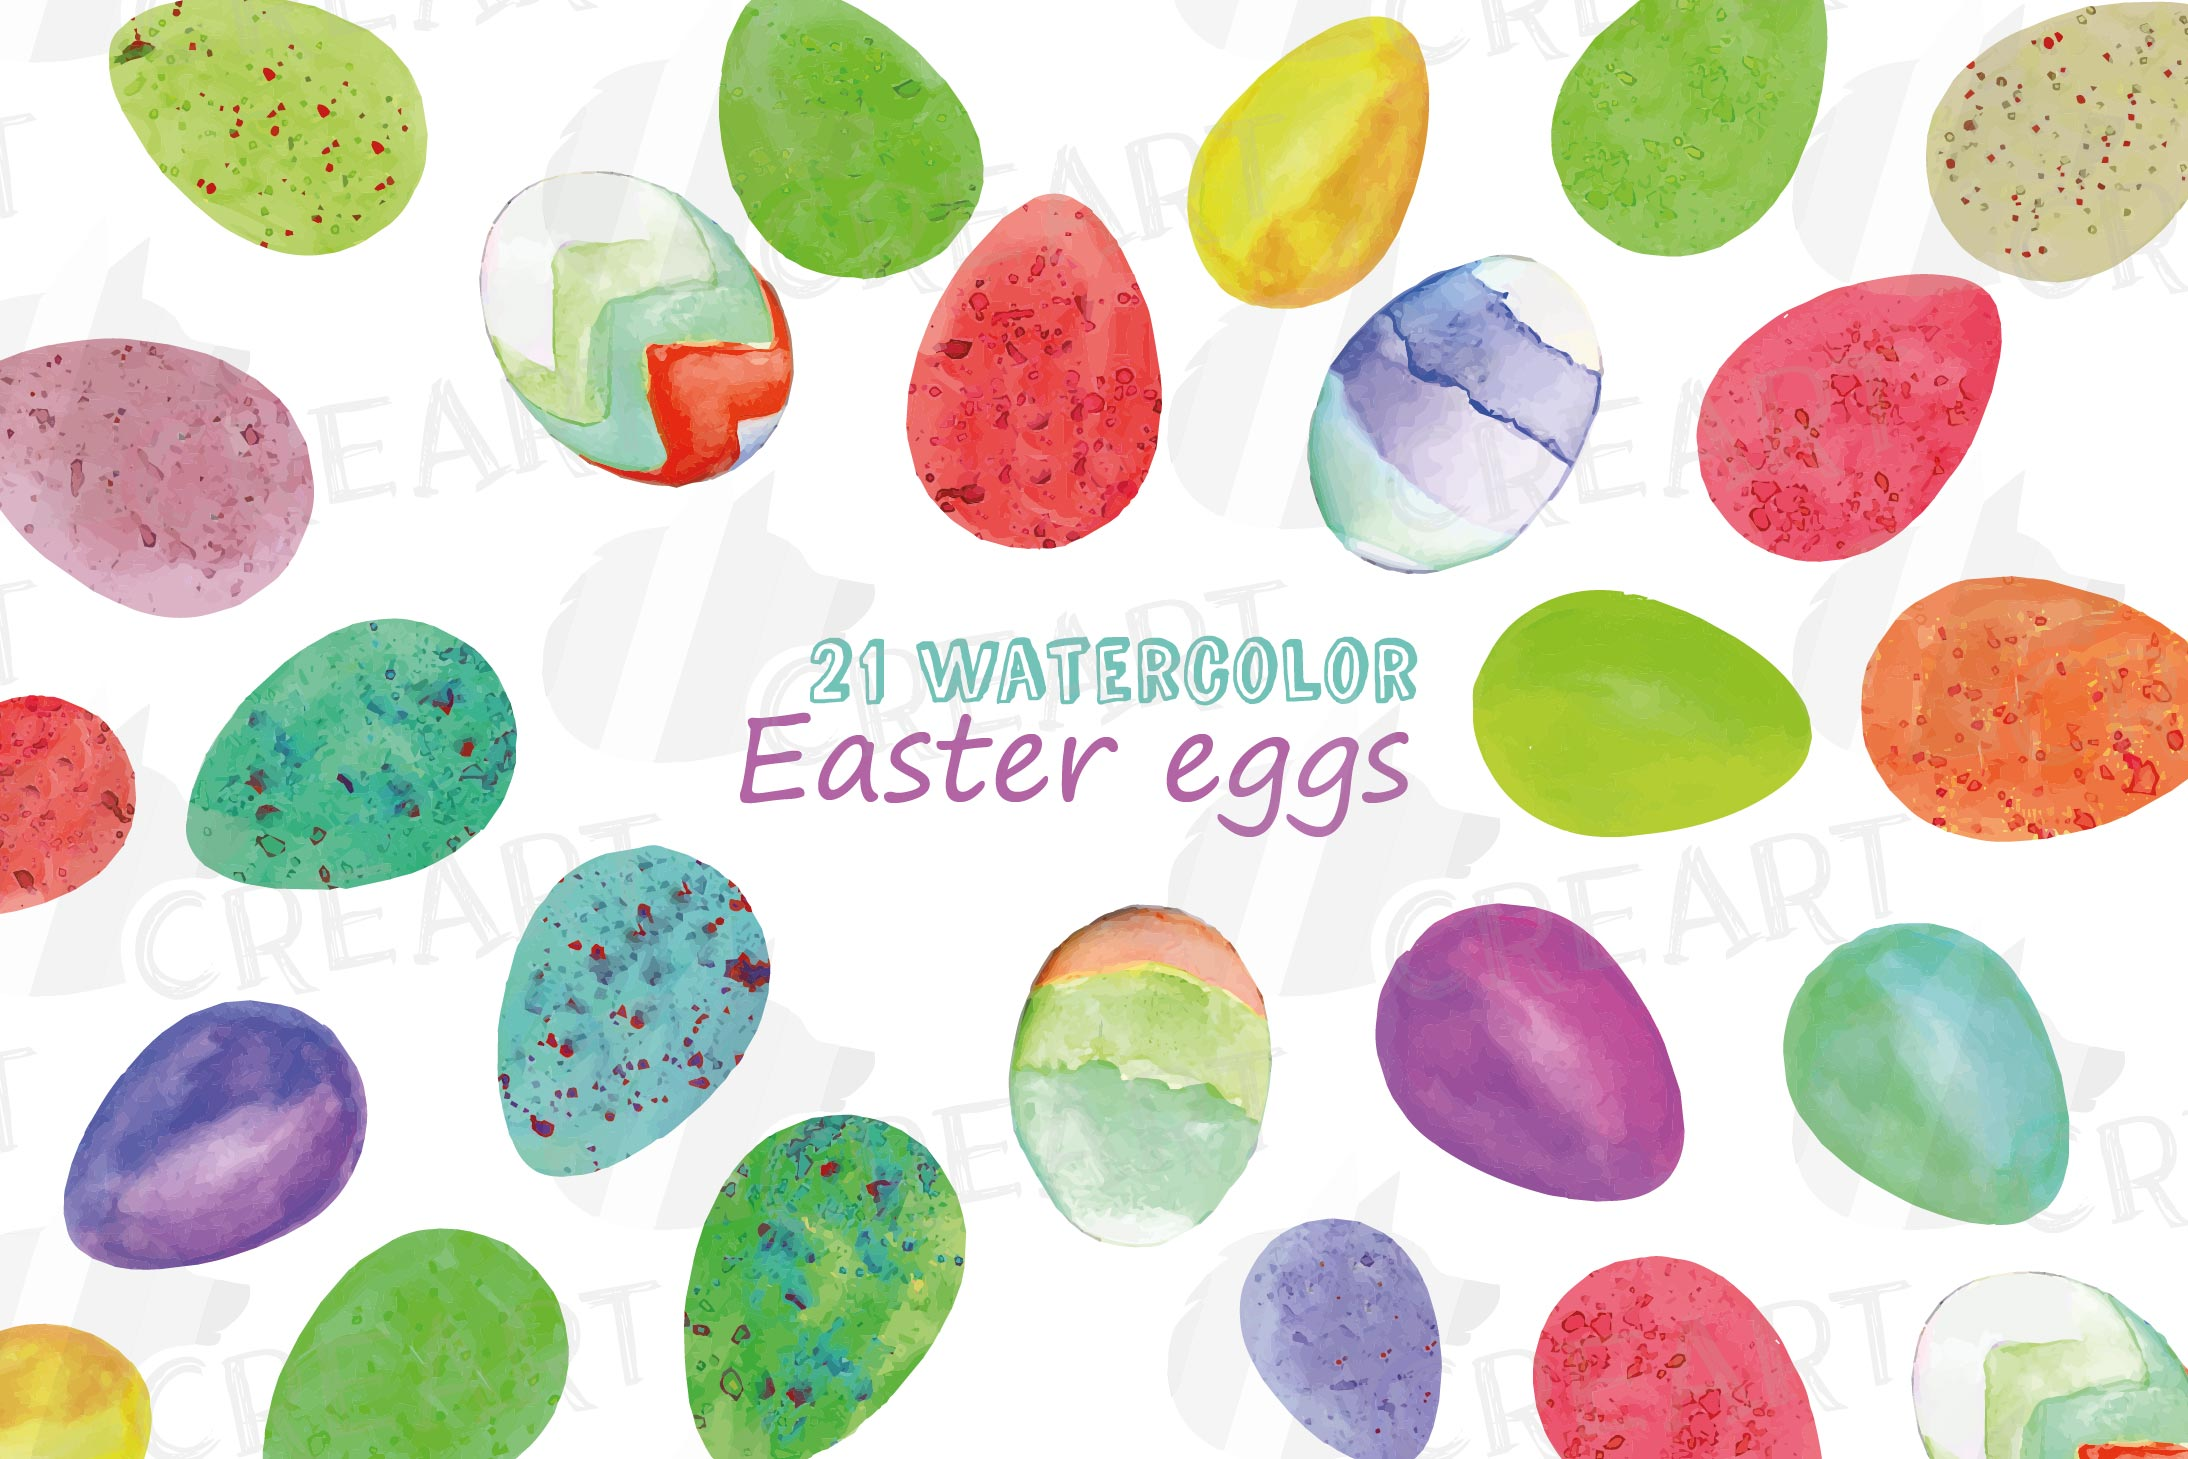 Watercolor Easter eggs colorful clip art pack example image 1